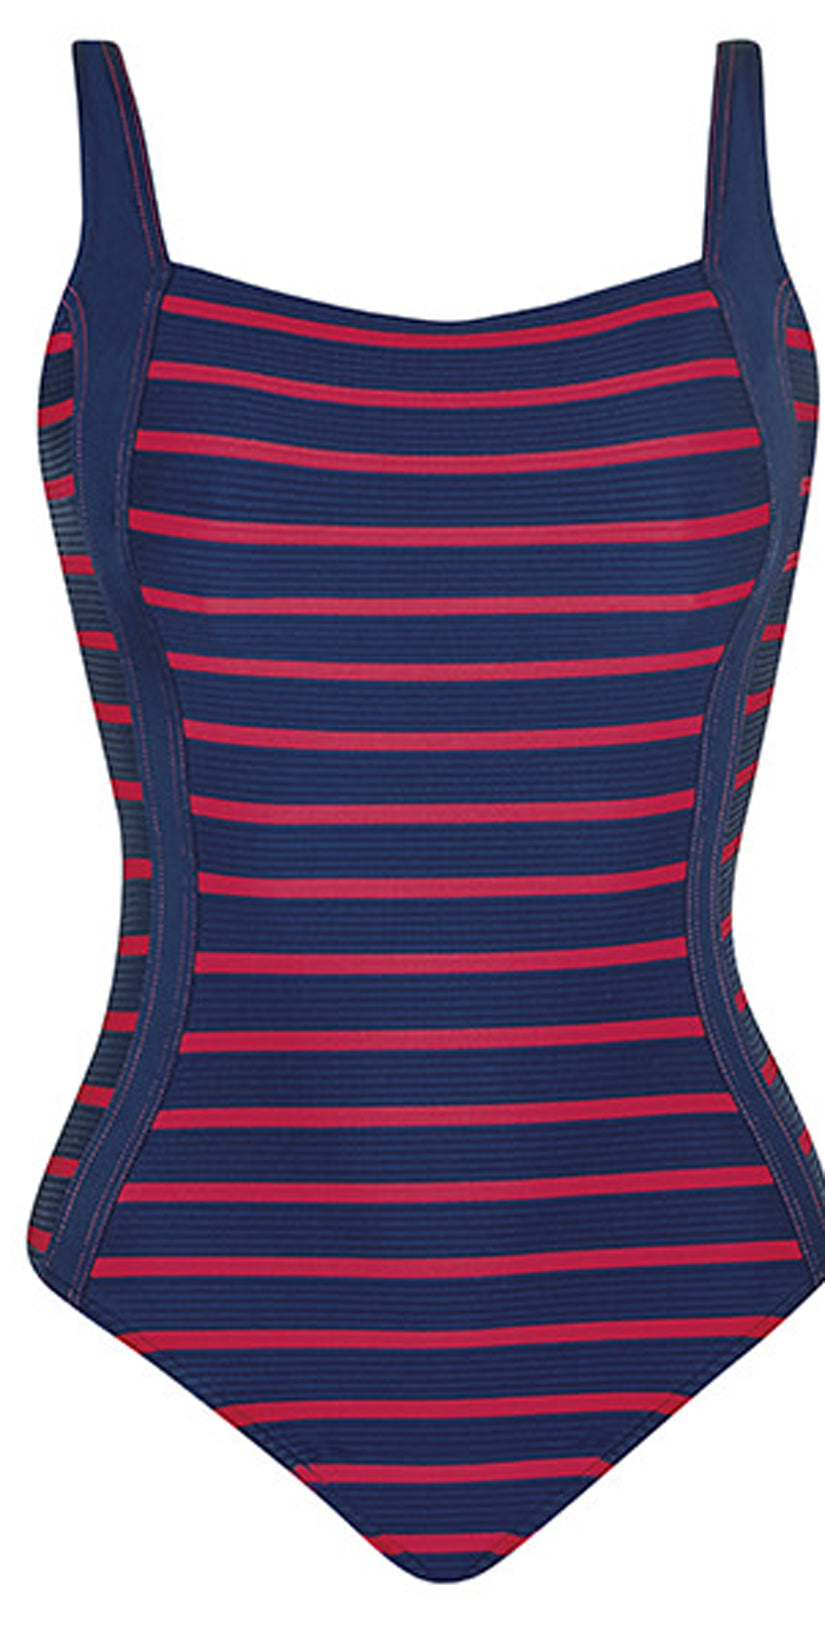 Sunflair New Nautic Square Neck One Piece Swimsuit in Navy Flat image